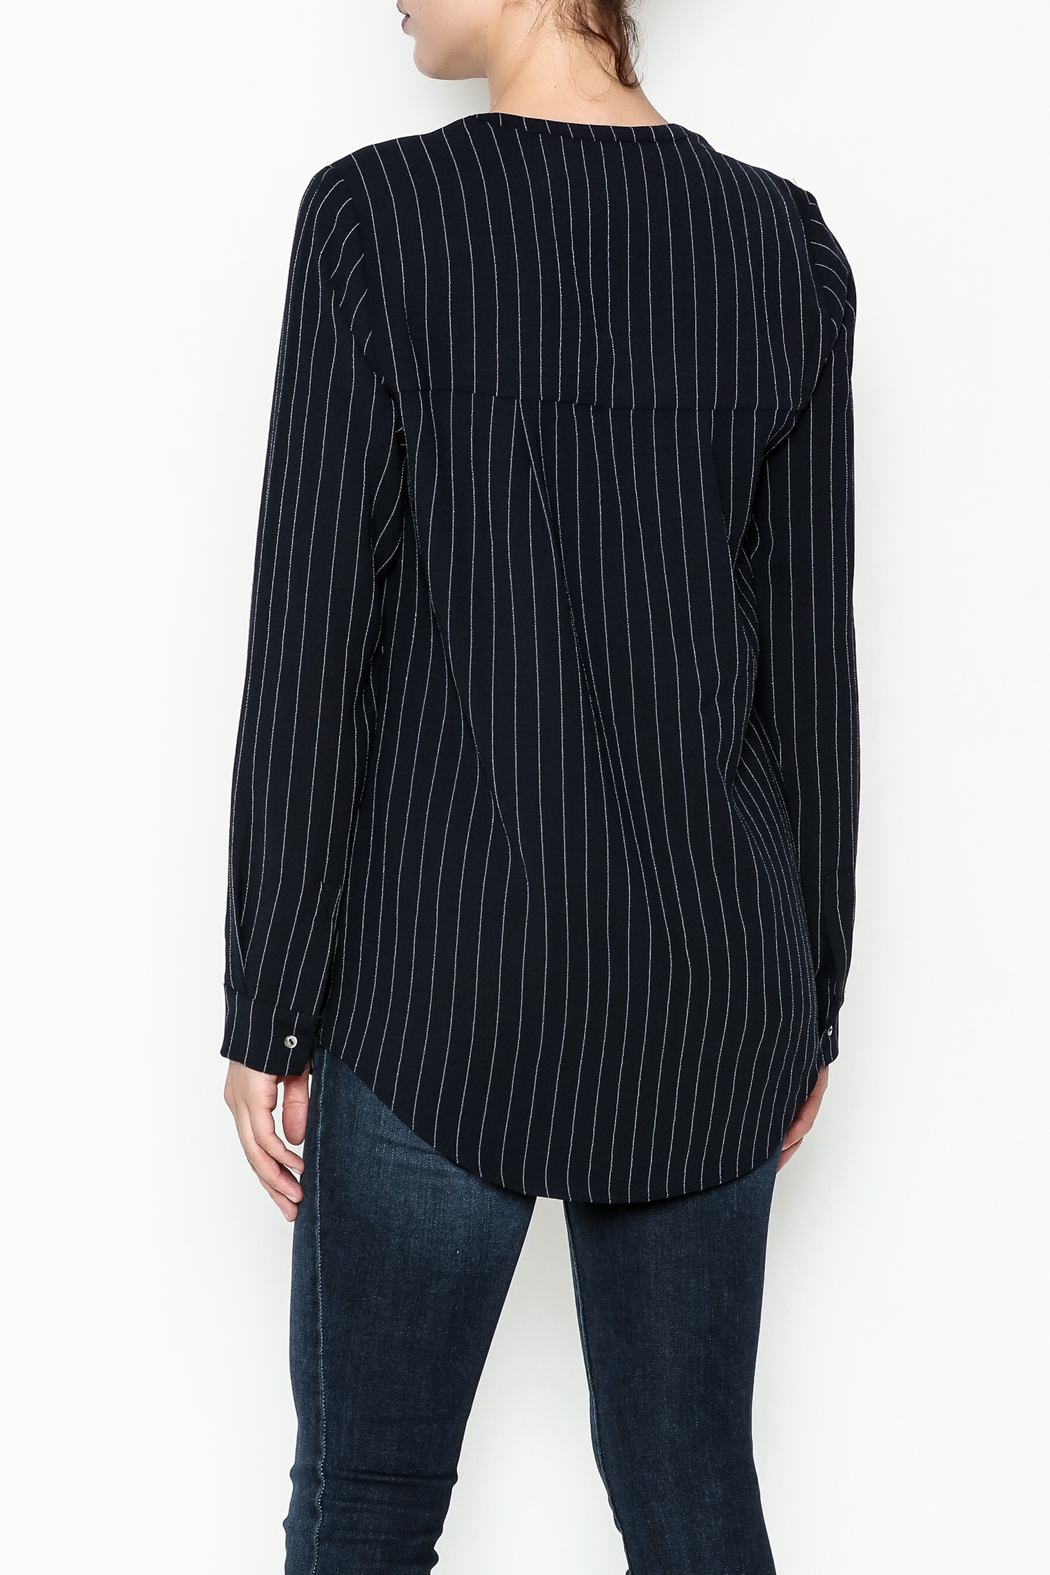 WREN & WILLA Pinstripe V Neck Blouse - Back Cropped Image